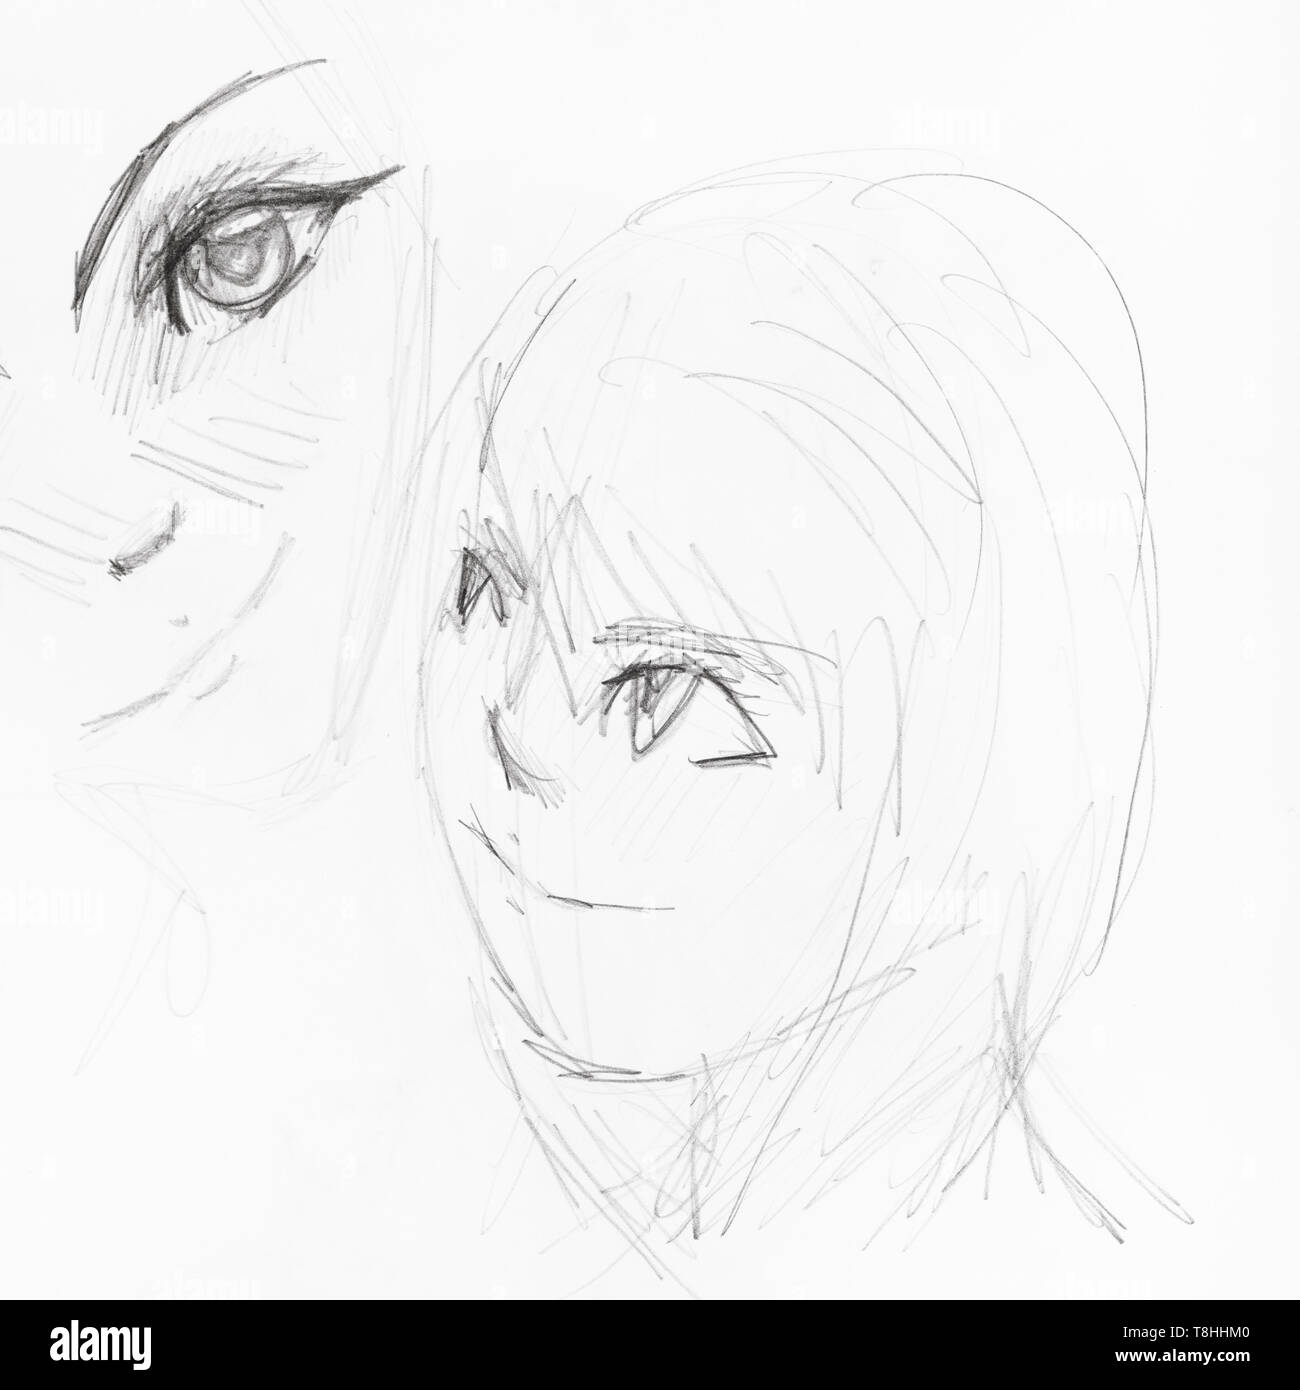 Sketches of girls faces in anime style hand drawn by black pencil on white paper